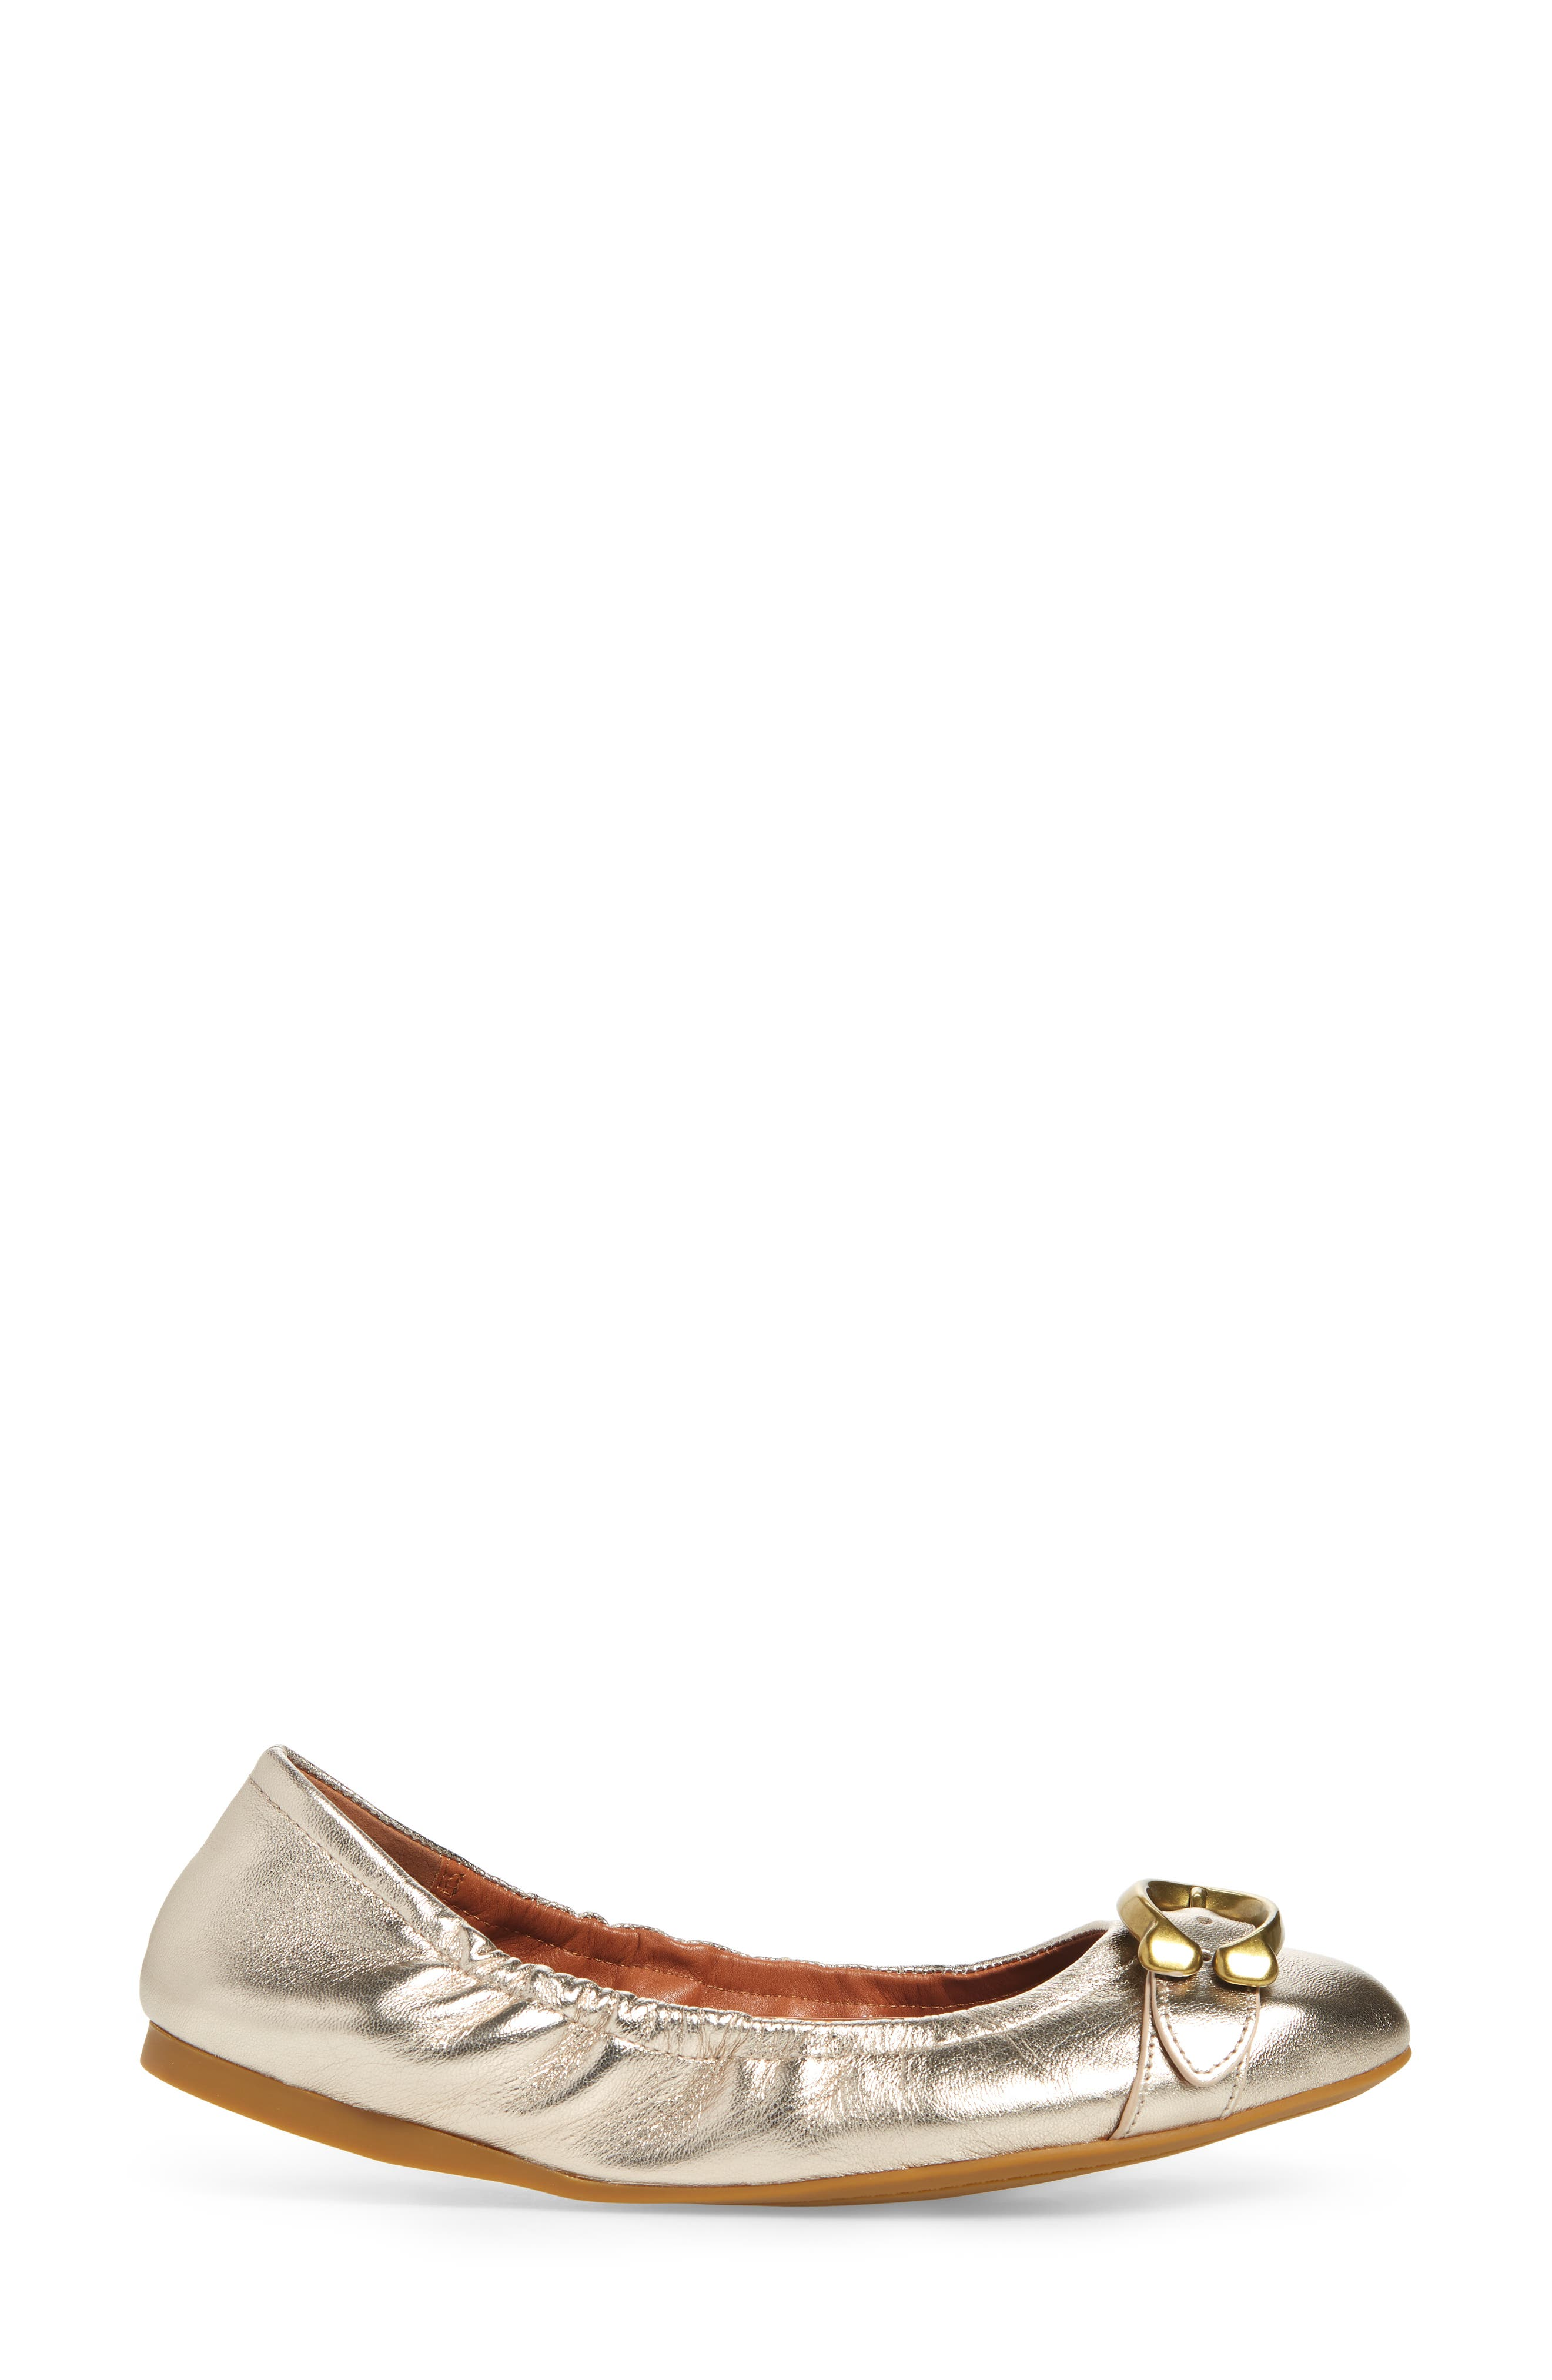 Stanton Buckle Flat,                             Alternate thumbnail 3, color,                             CHAMPAGNE METALLIC LEATHER